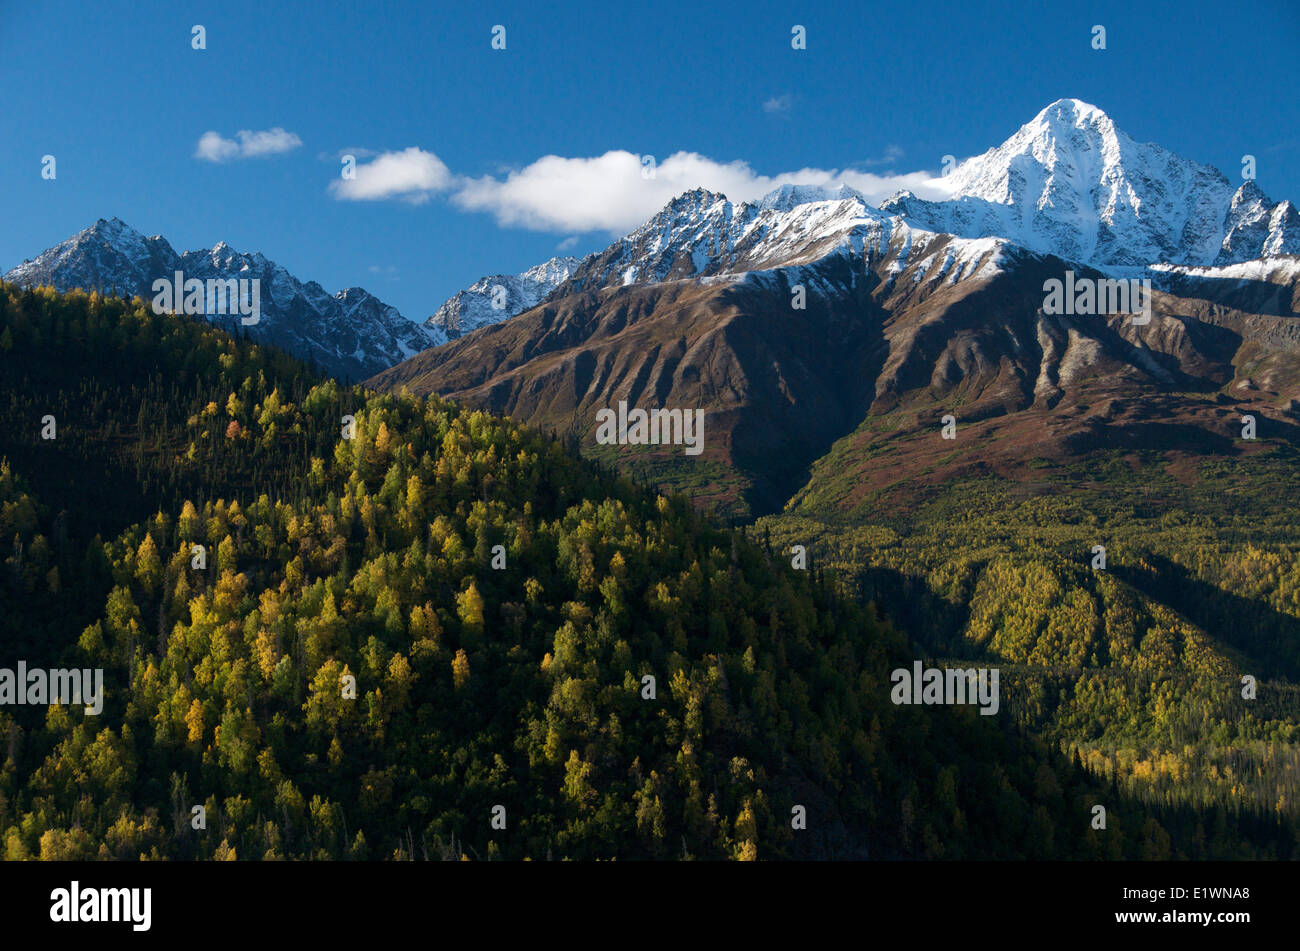 Scene of first snows on Chugach Mountains along Glenn Highway, Alaska, USA - Stock Image